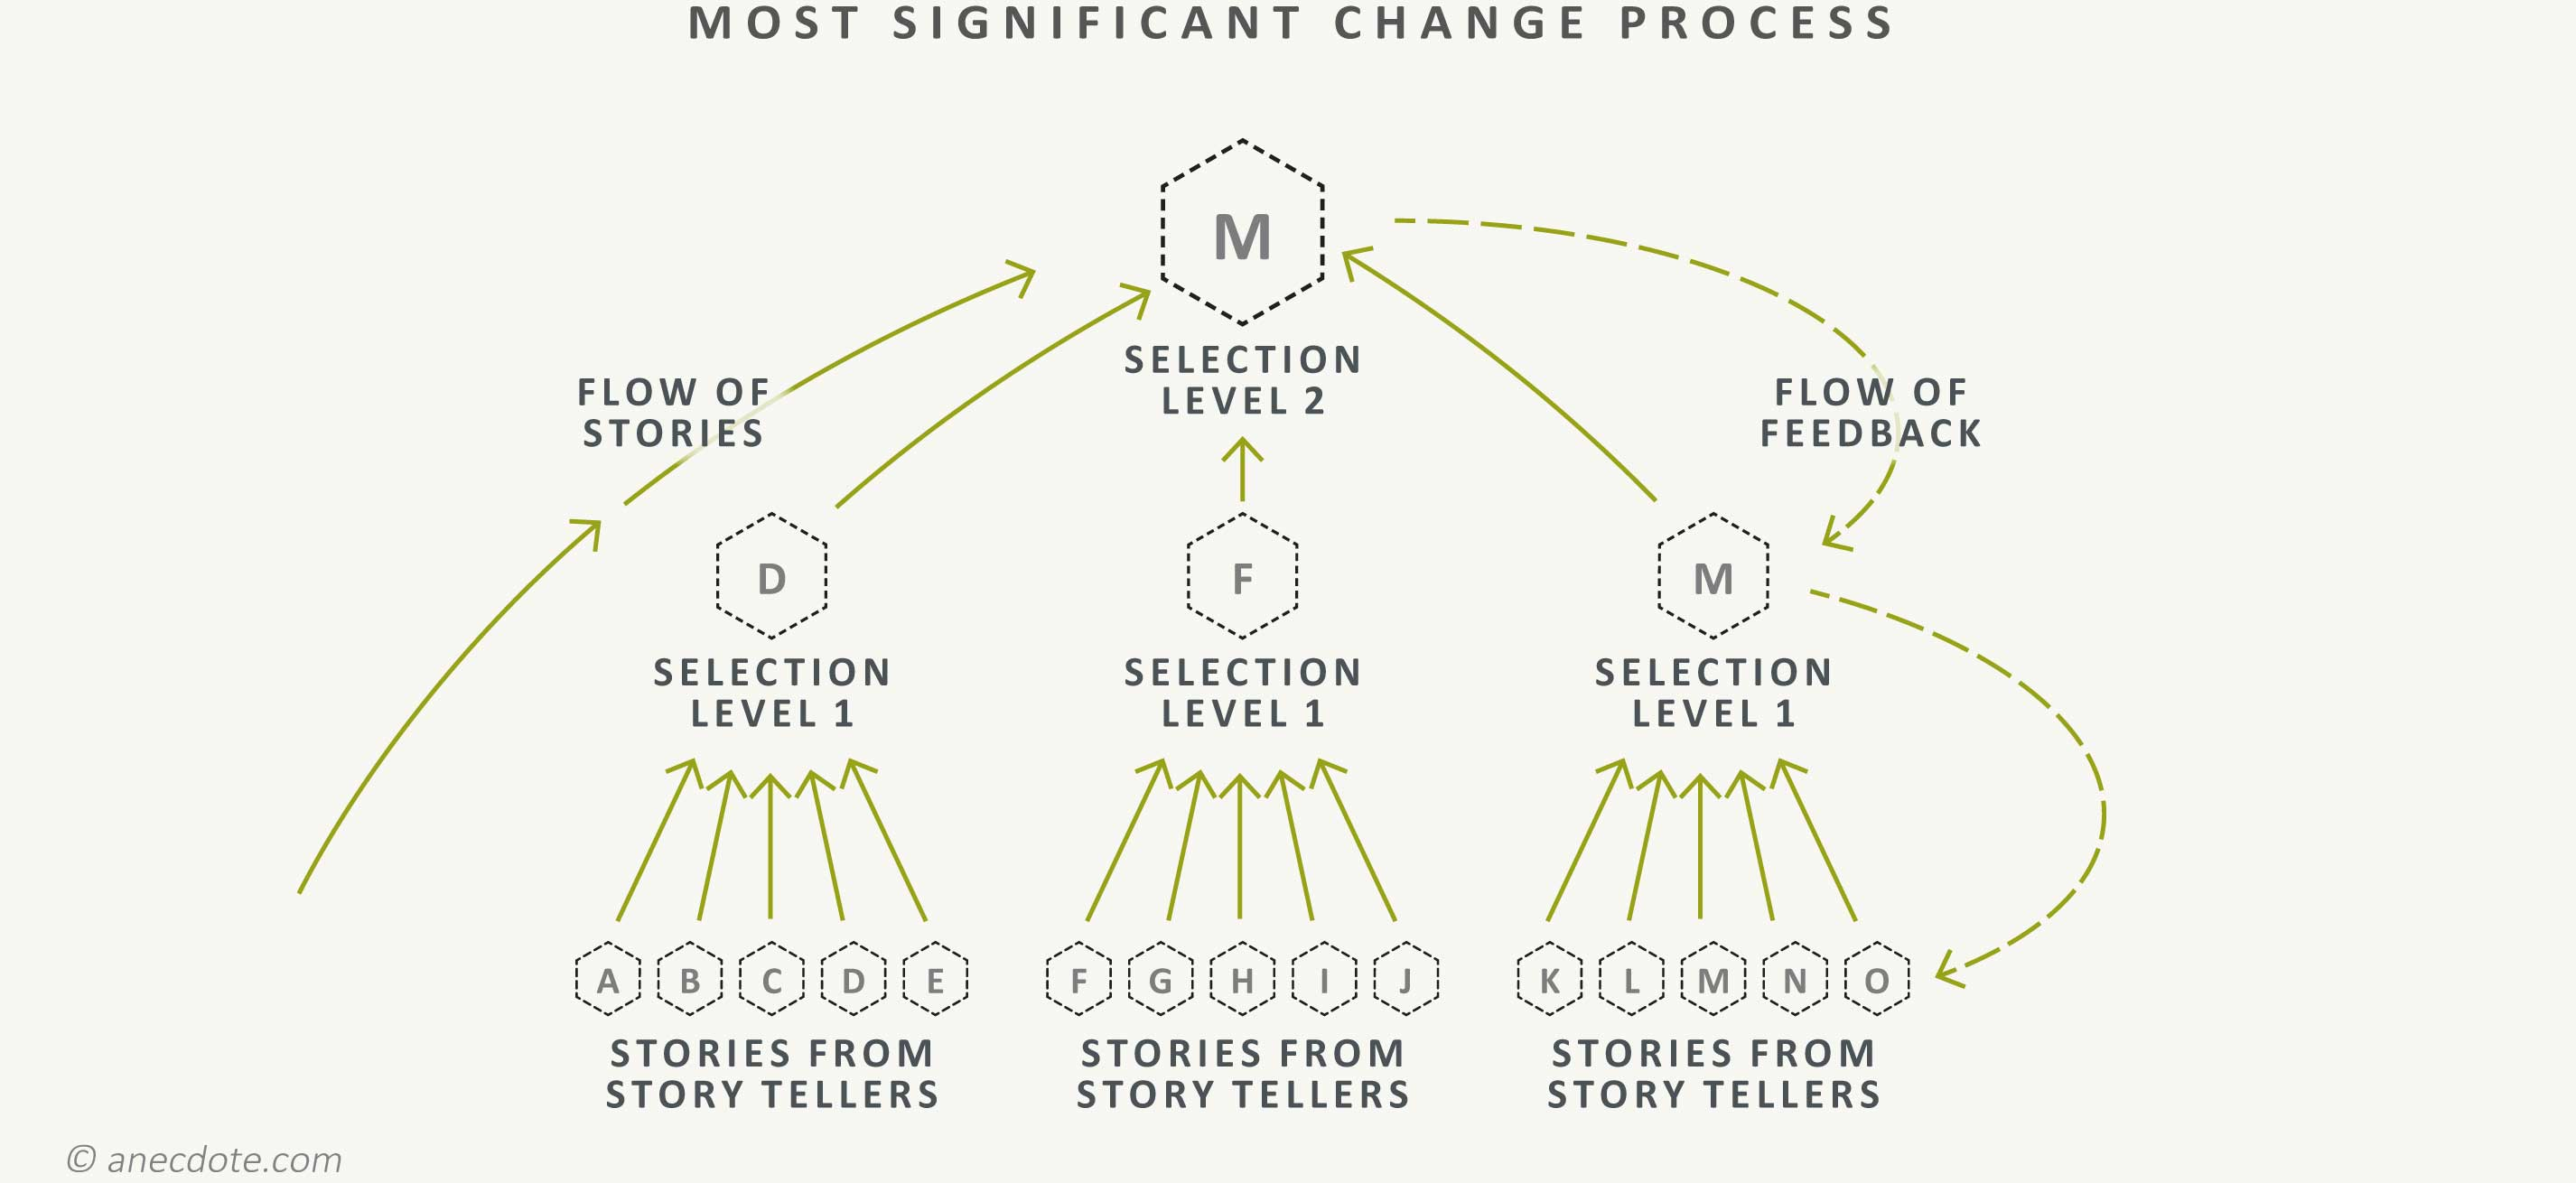 Most significant change process